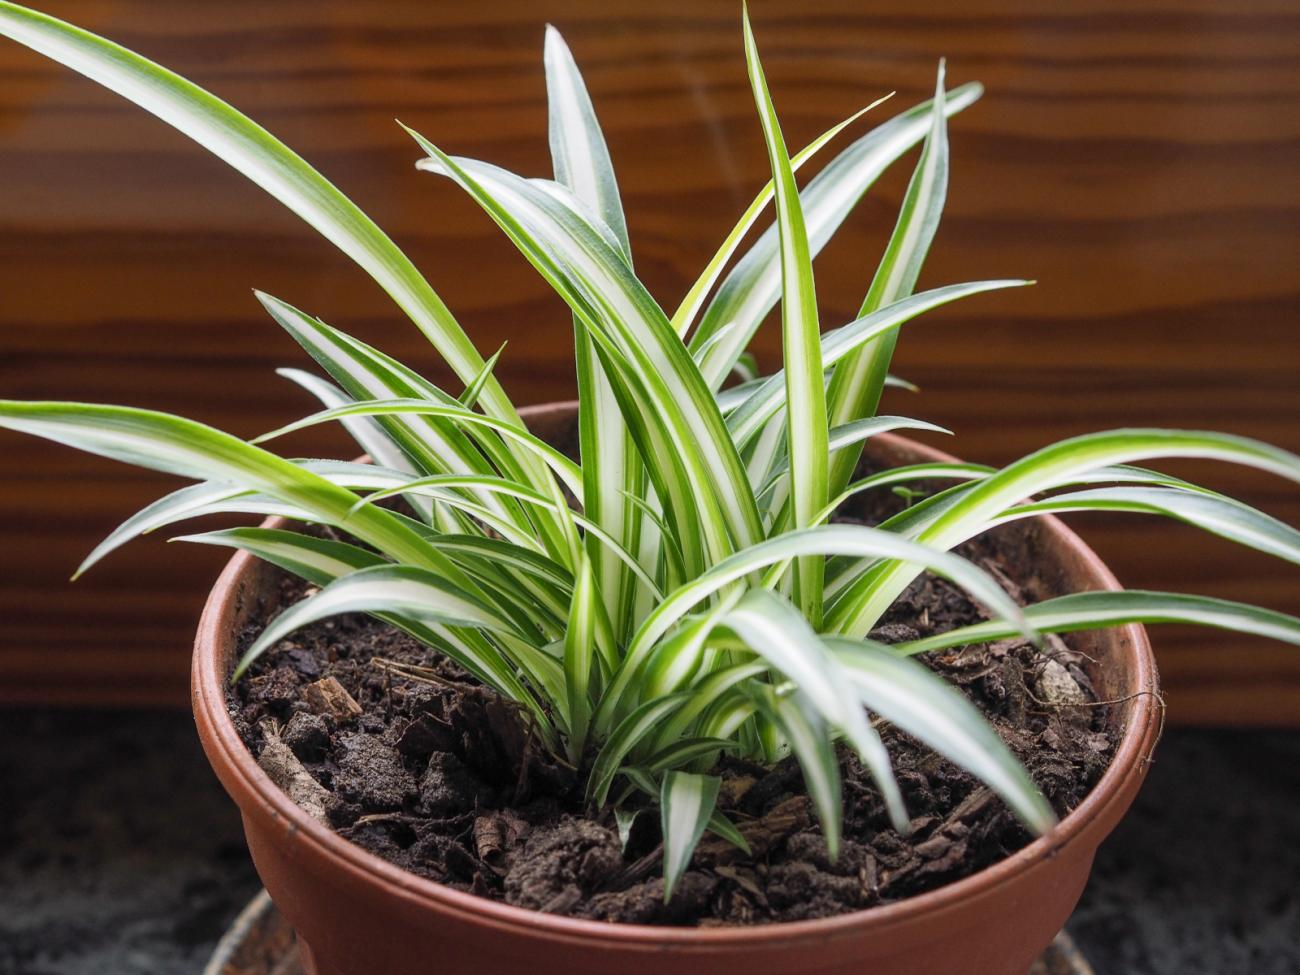 spider plants how to grow and care for spider plants the old farmer 39 s almanac. Black Bedroom Furniture Sets. Home Design Ideas